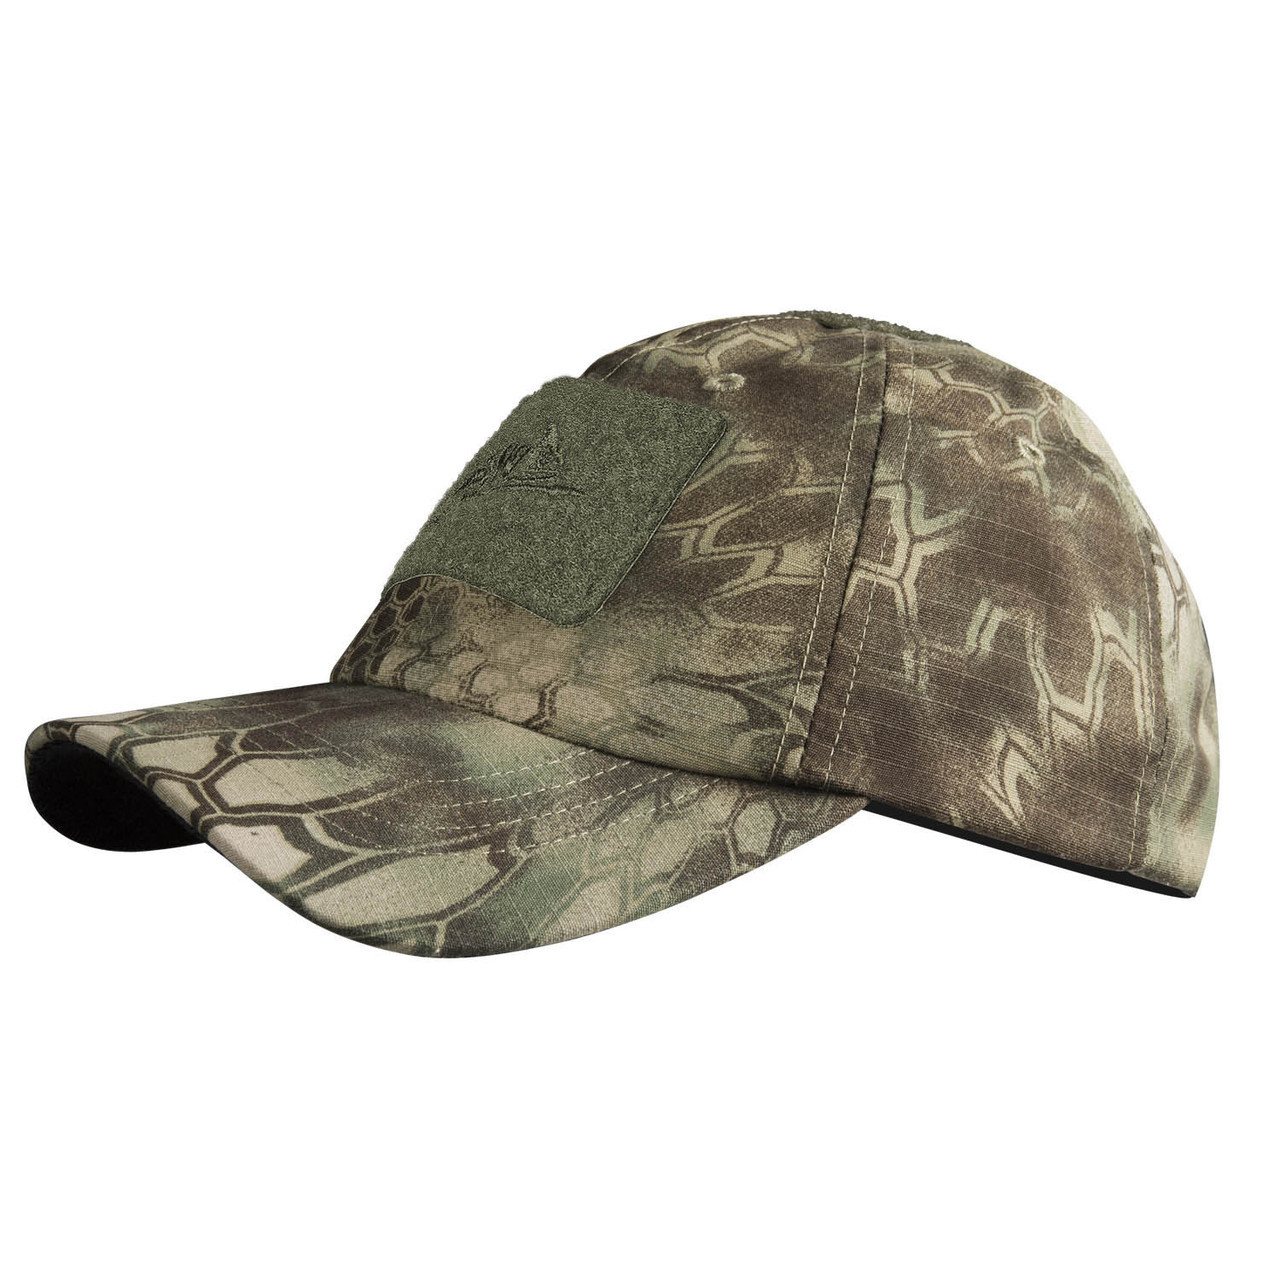 Clothing HELIKON ARMY MILITARY OPERATORS TACTICAL BASEBALL ADJUSTABLE FIELD CAP Outdoor Sports